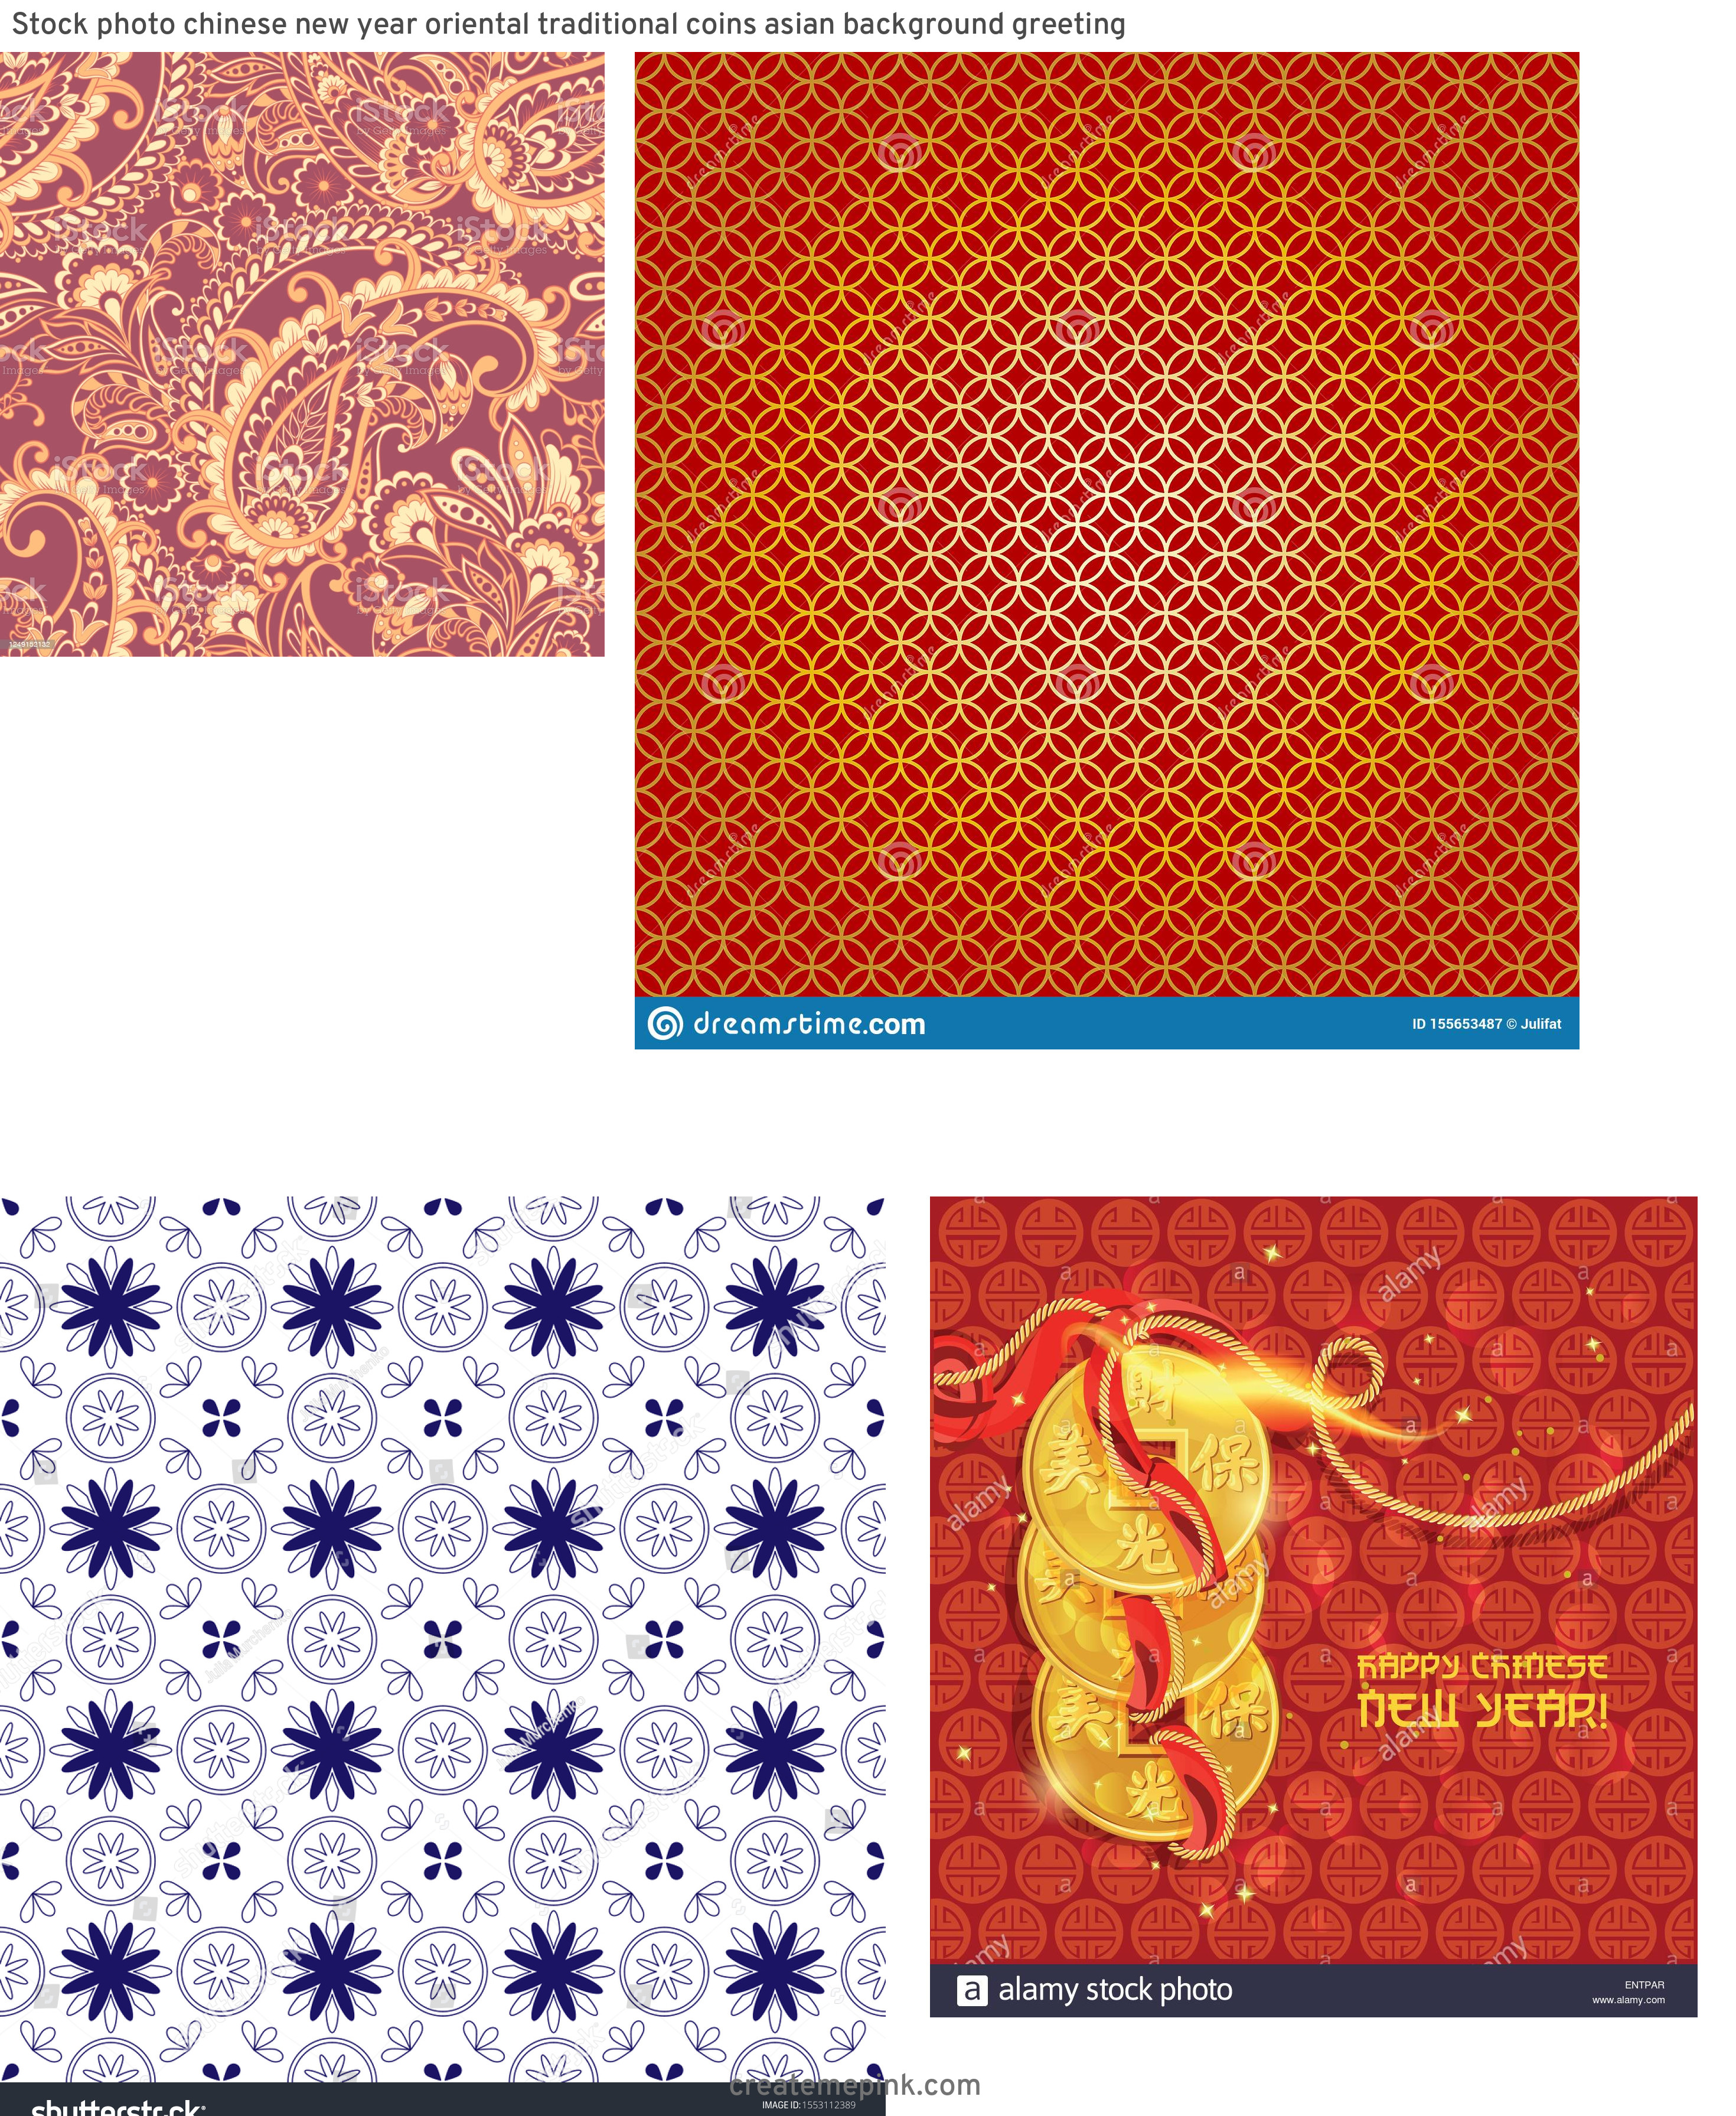 Asian Background Vector: Stock Photo Chinese New Year Oriental Traditional Coins Asian Background Greeting